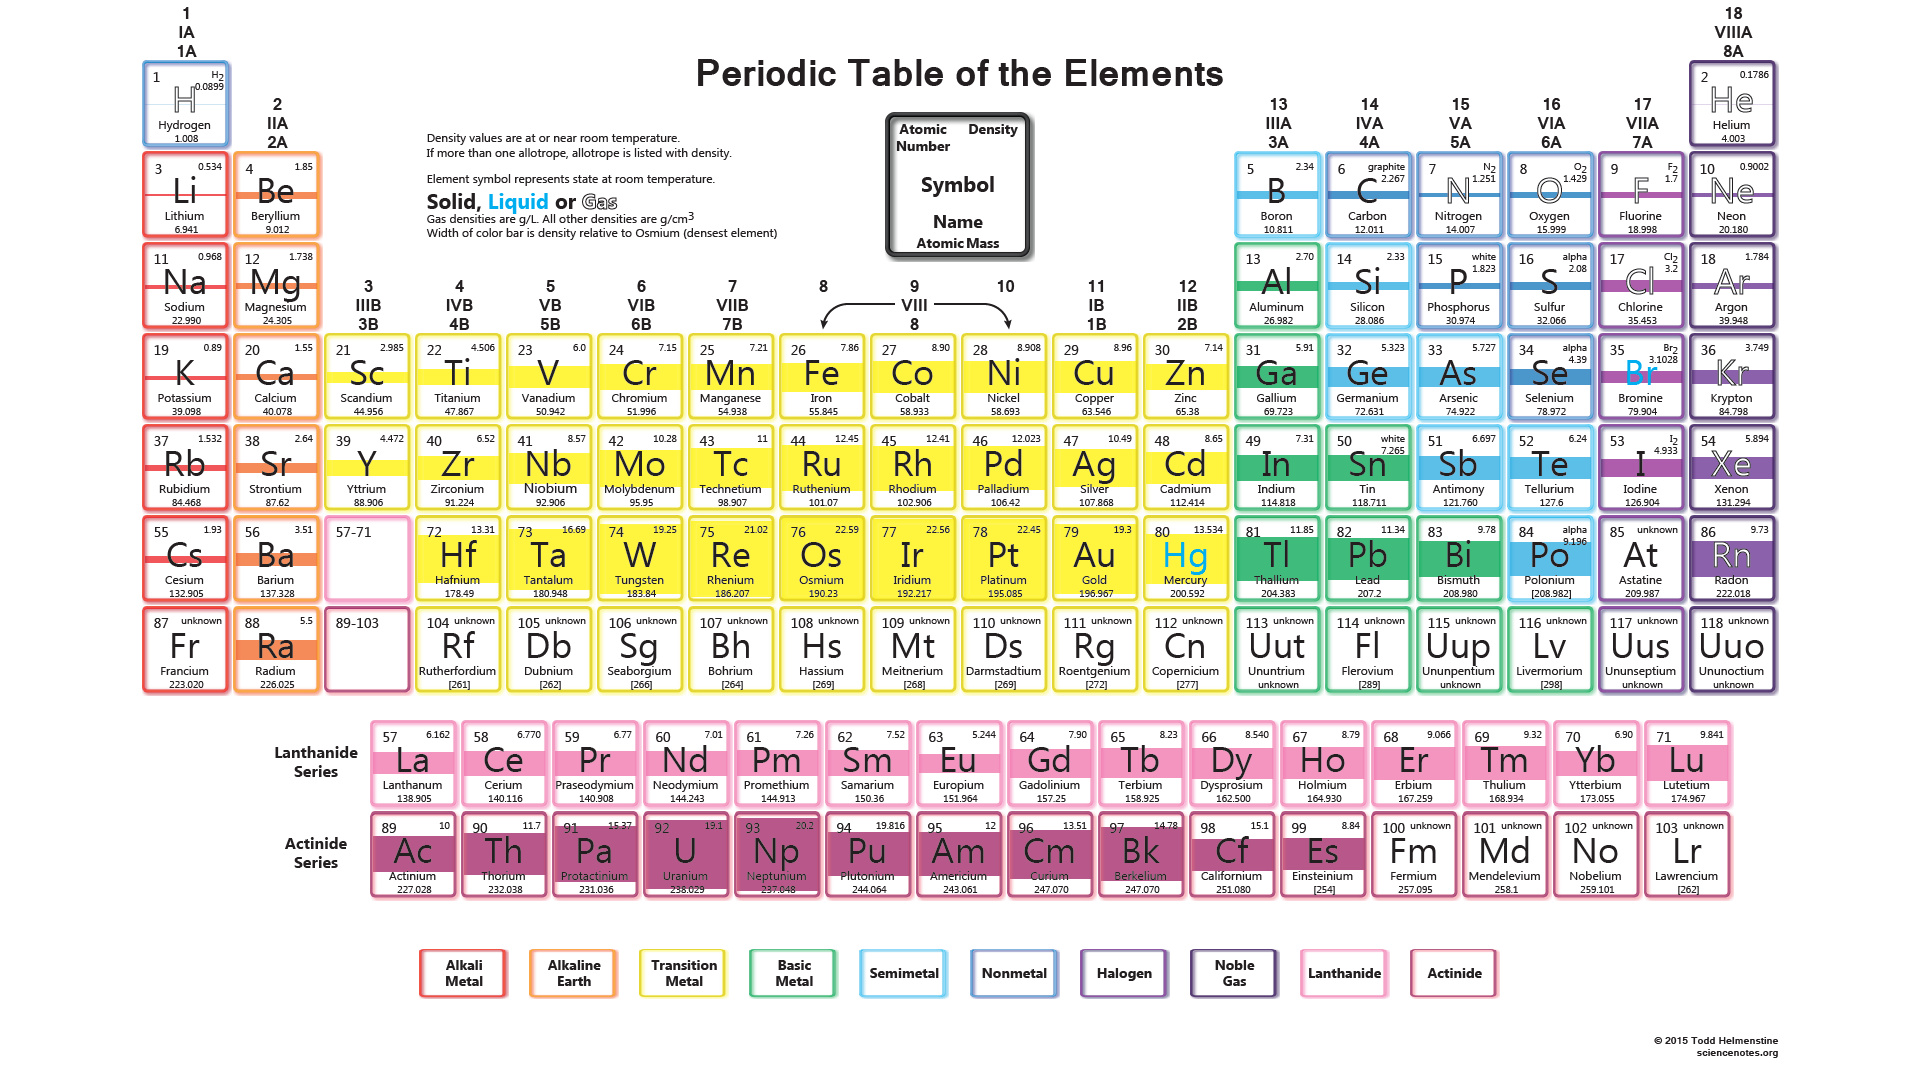 Periodic table wallpaper hd density periodic table wallpaper density each element is represented by its atomic number urtaz Image collections